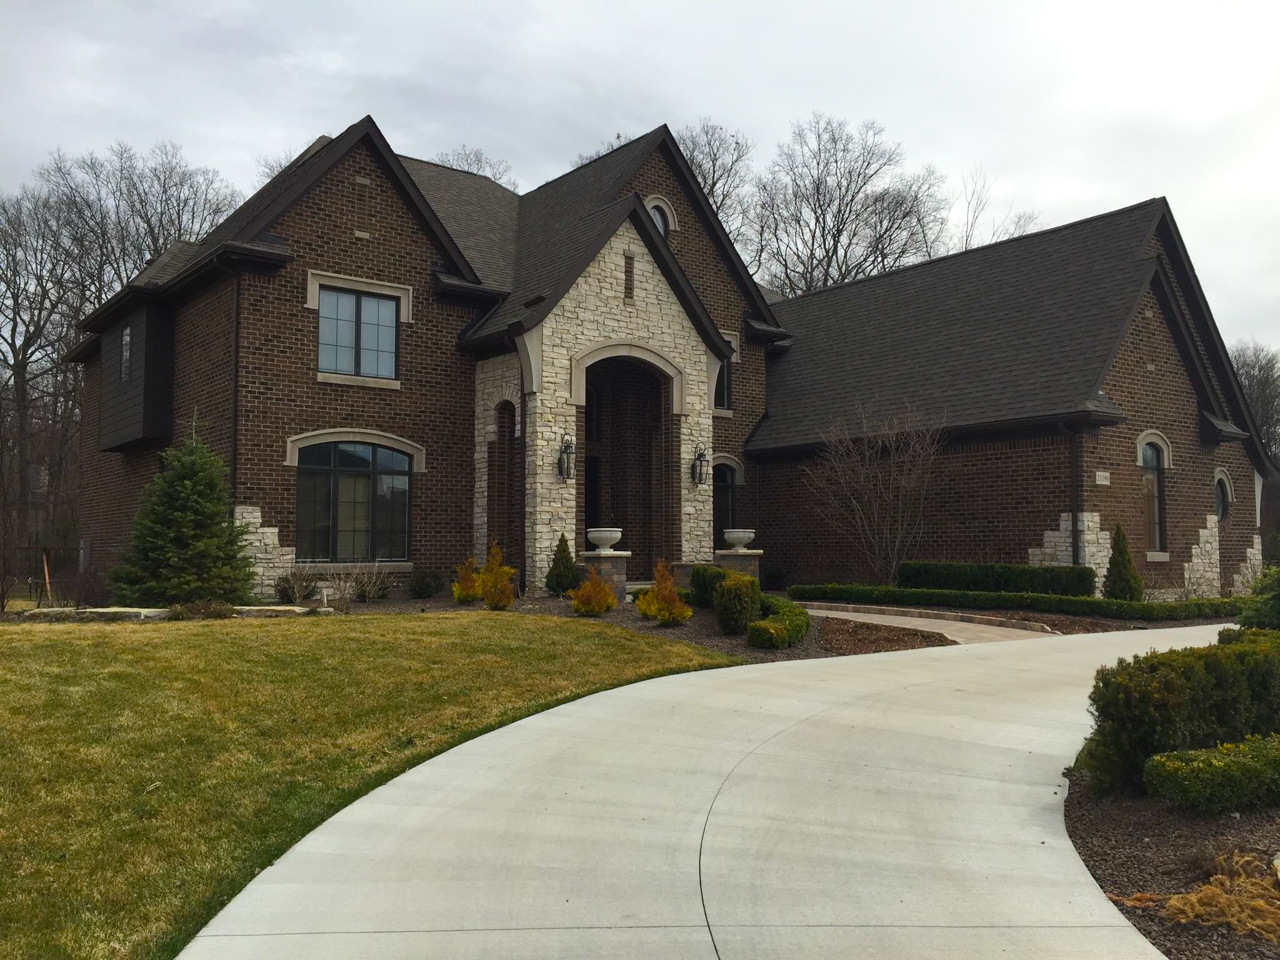 Building relationships one custom home at a time. General Contracting in the Fenton, South Lyon, Novi, Canton, Clarkston, Orion, and other Southwest Michigan areas Custom Experience